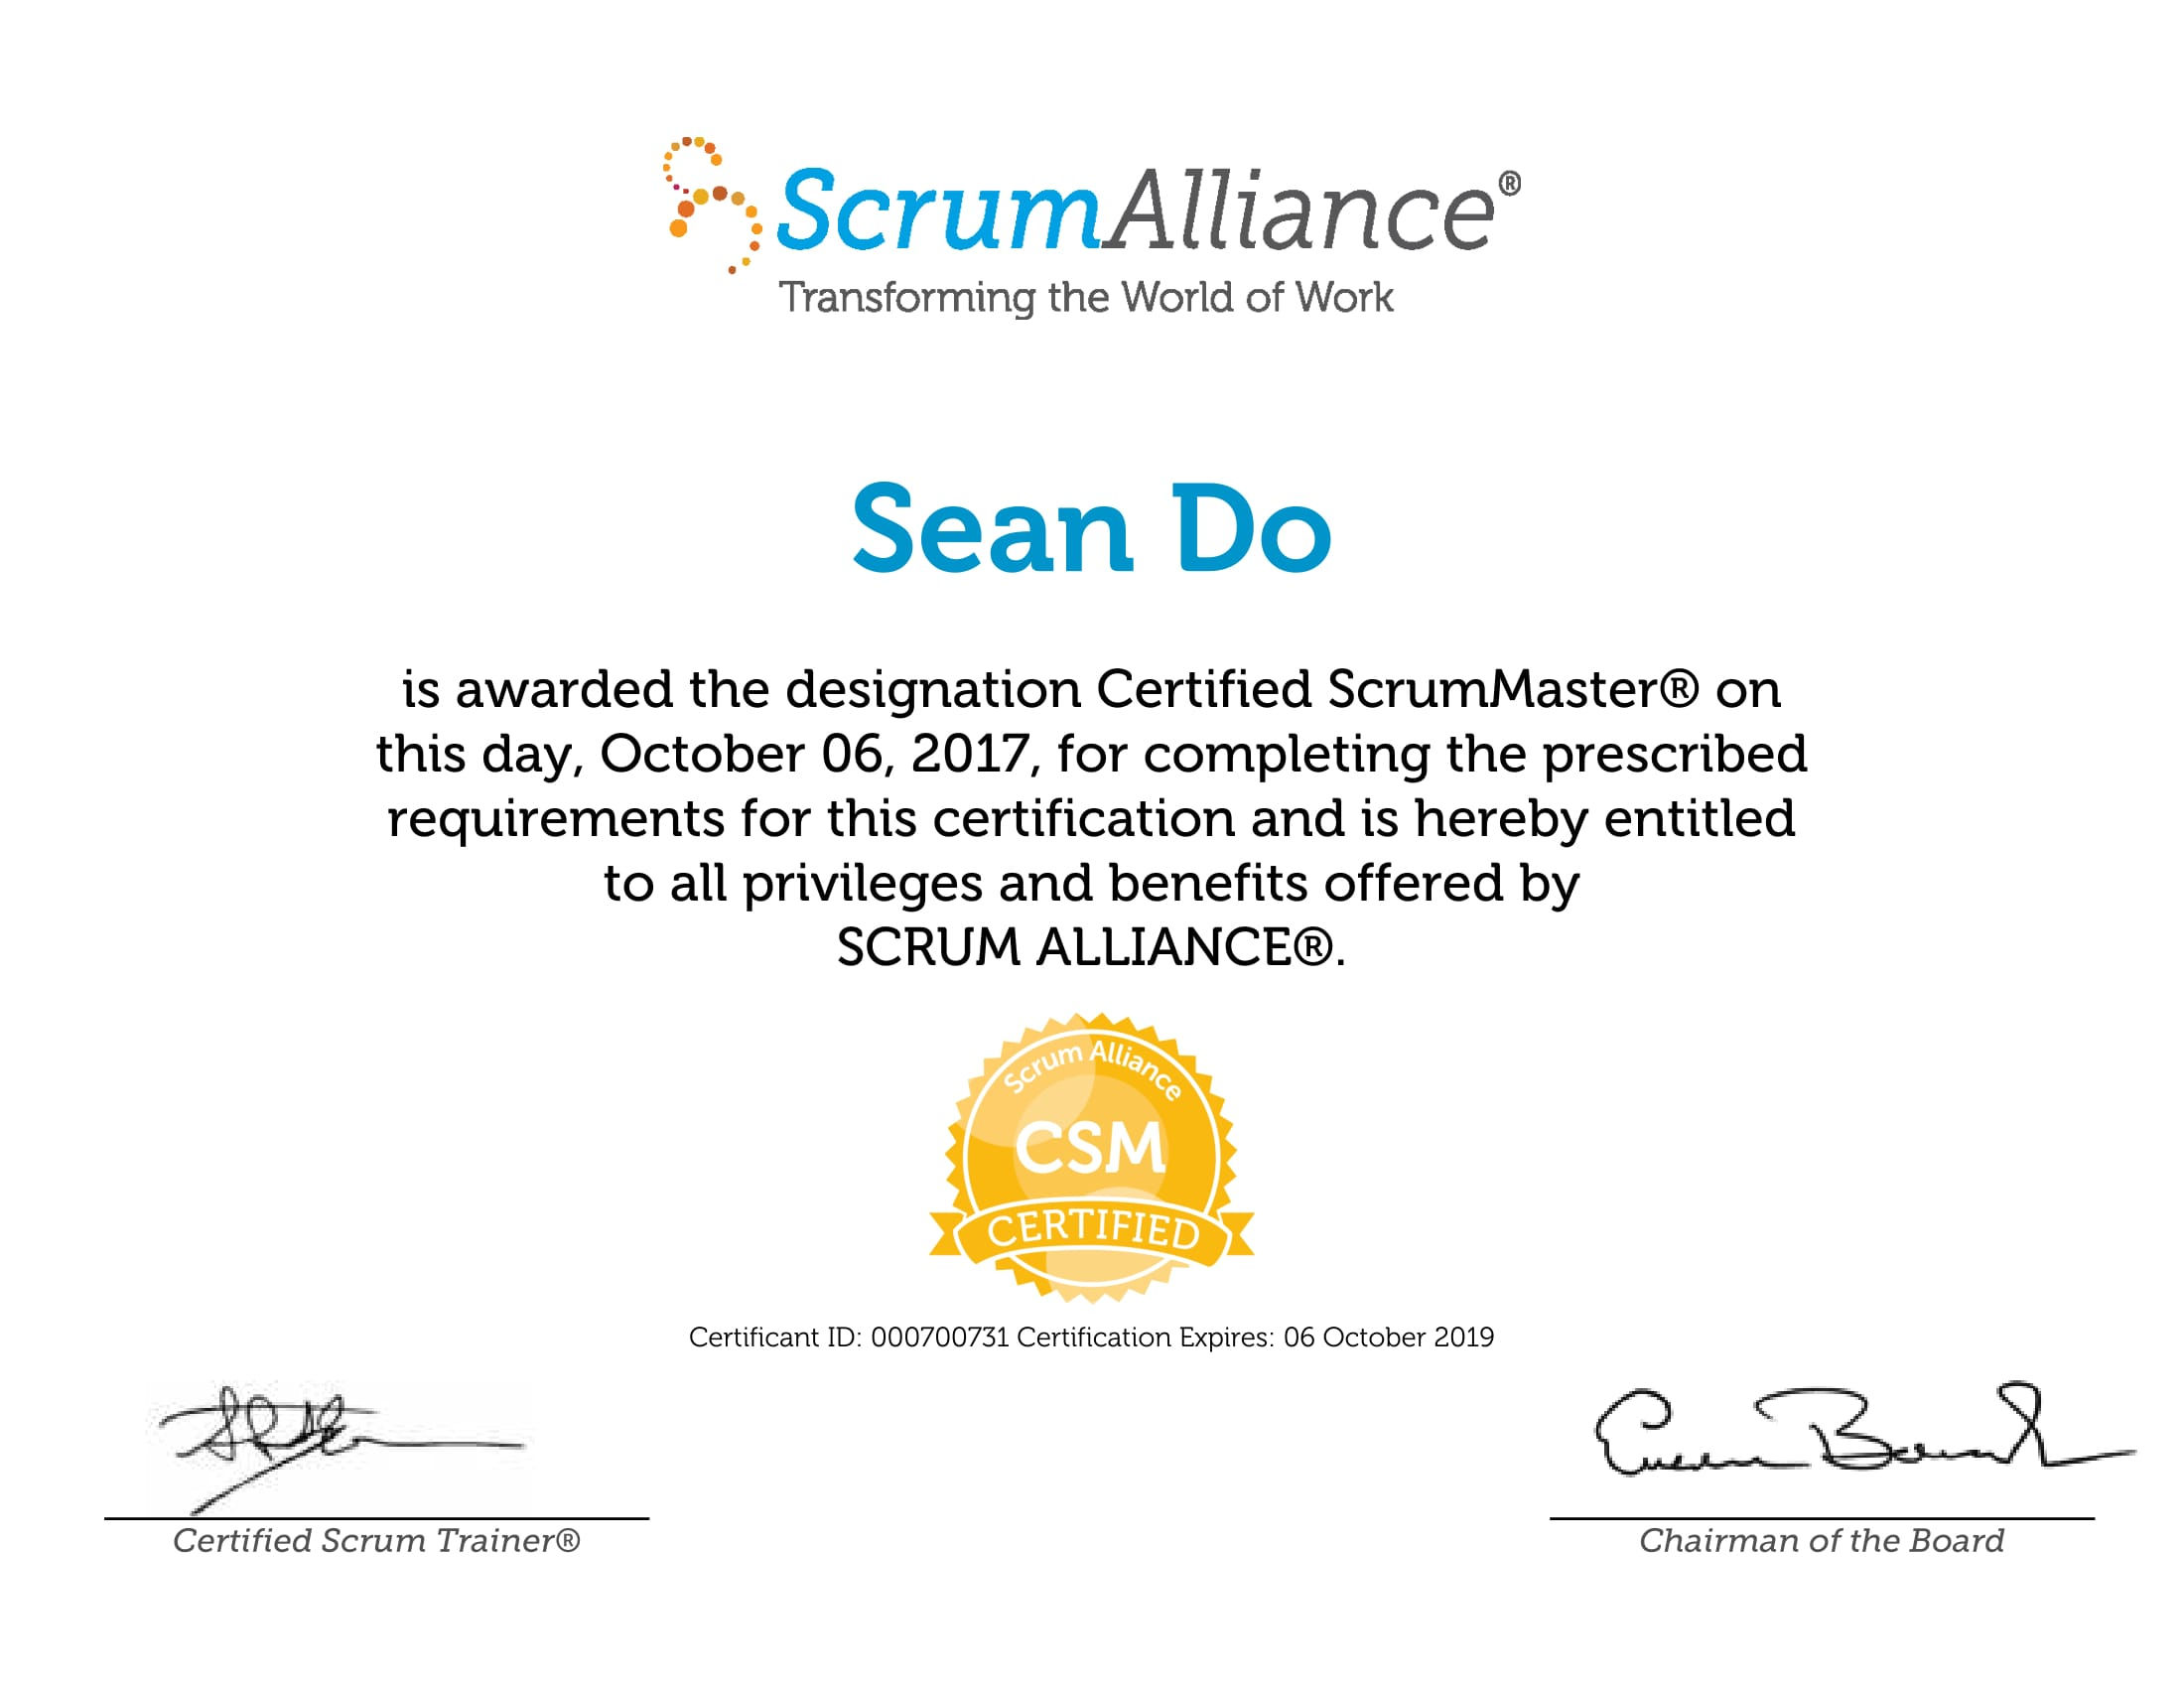 Sean Do-ScrumAlliance_CSM_Certificate-1.jpg